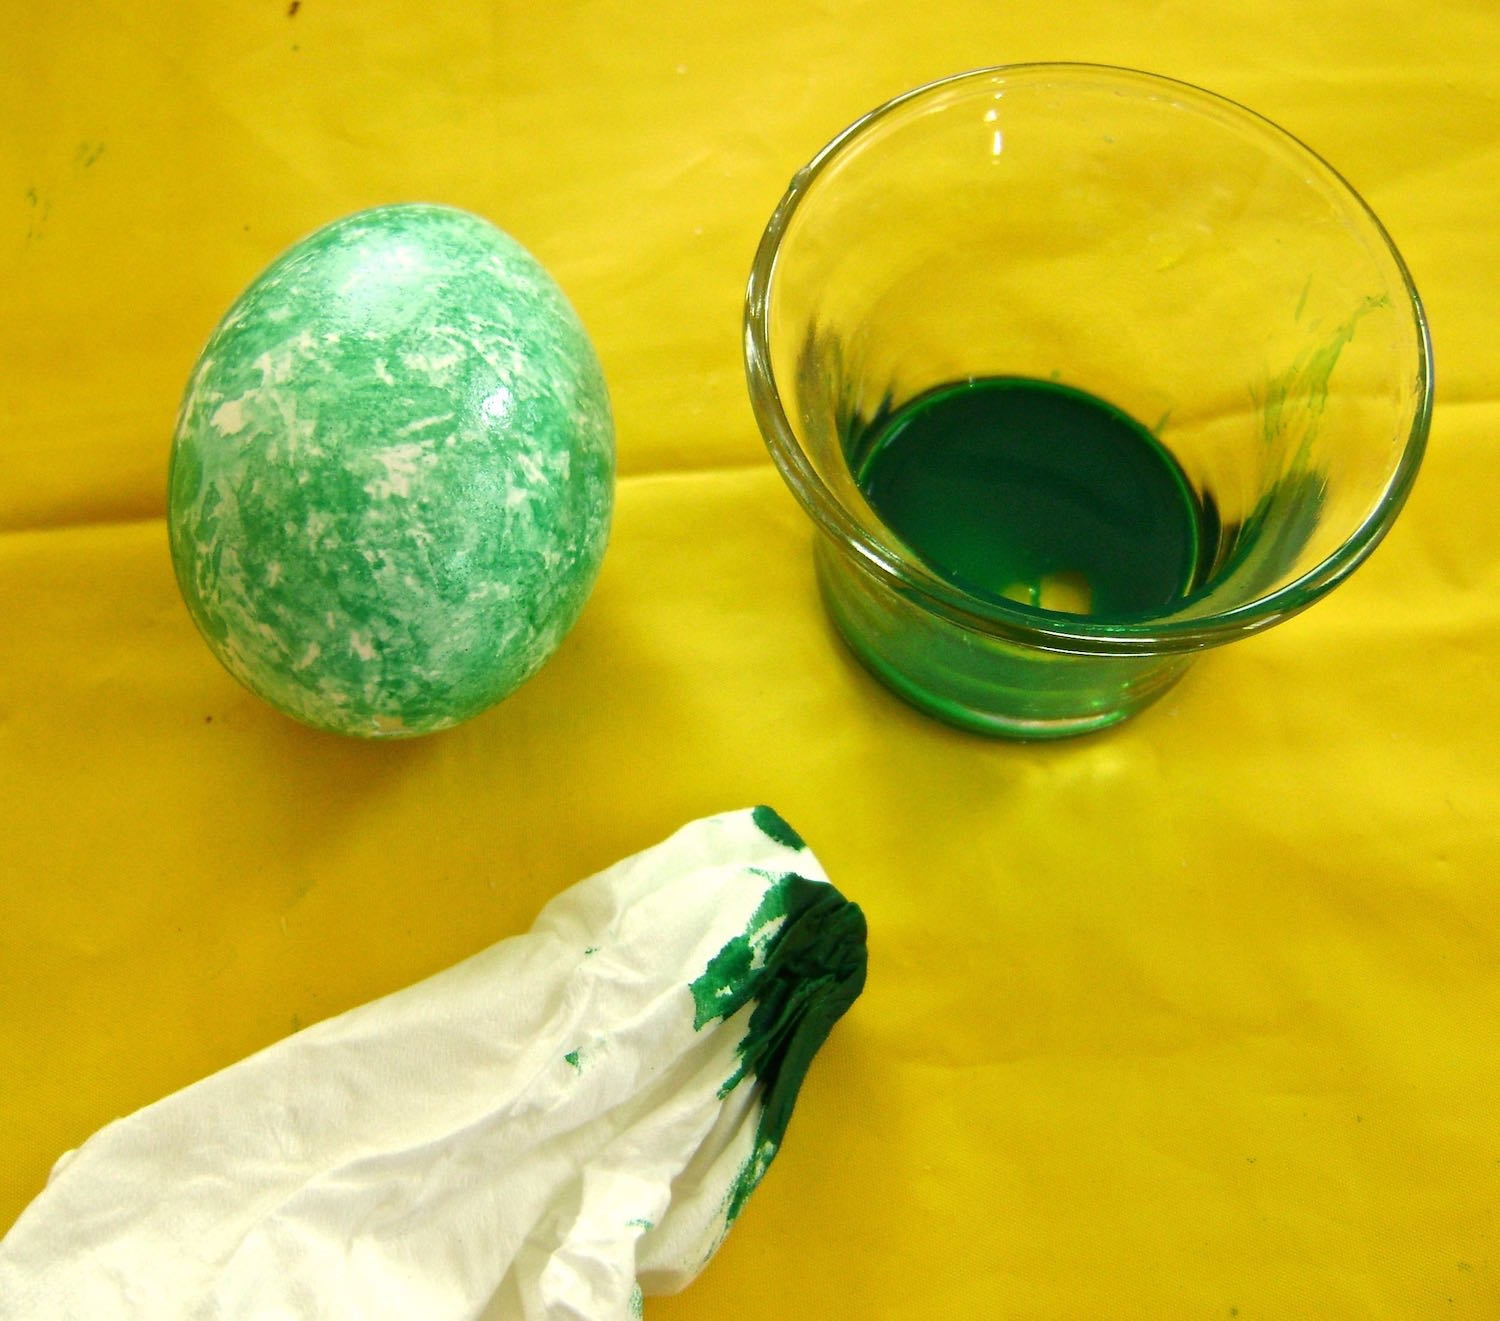 step 10 - Wad up a tissue and dip it in paint.  Dab it lightly on a paper towel to collect excess paint and avoid puddles on the egg.  Use the tissue to lightly dot color on the egg to create abstract designs.  But don't stop there!  Apply other colors in the same way on top of the first.